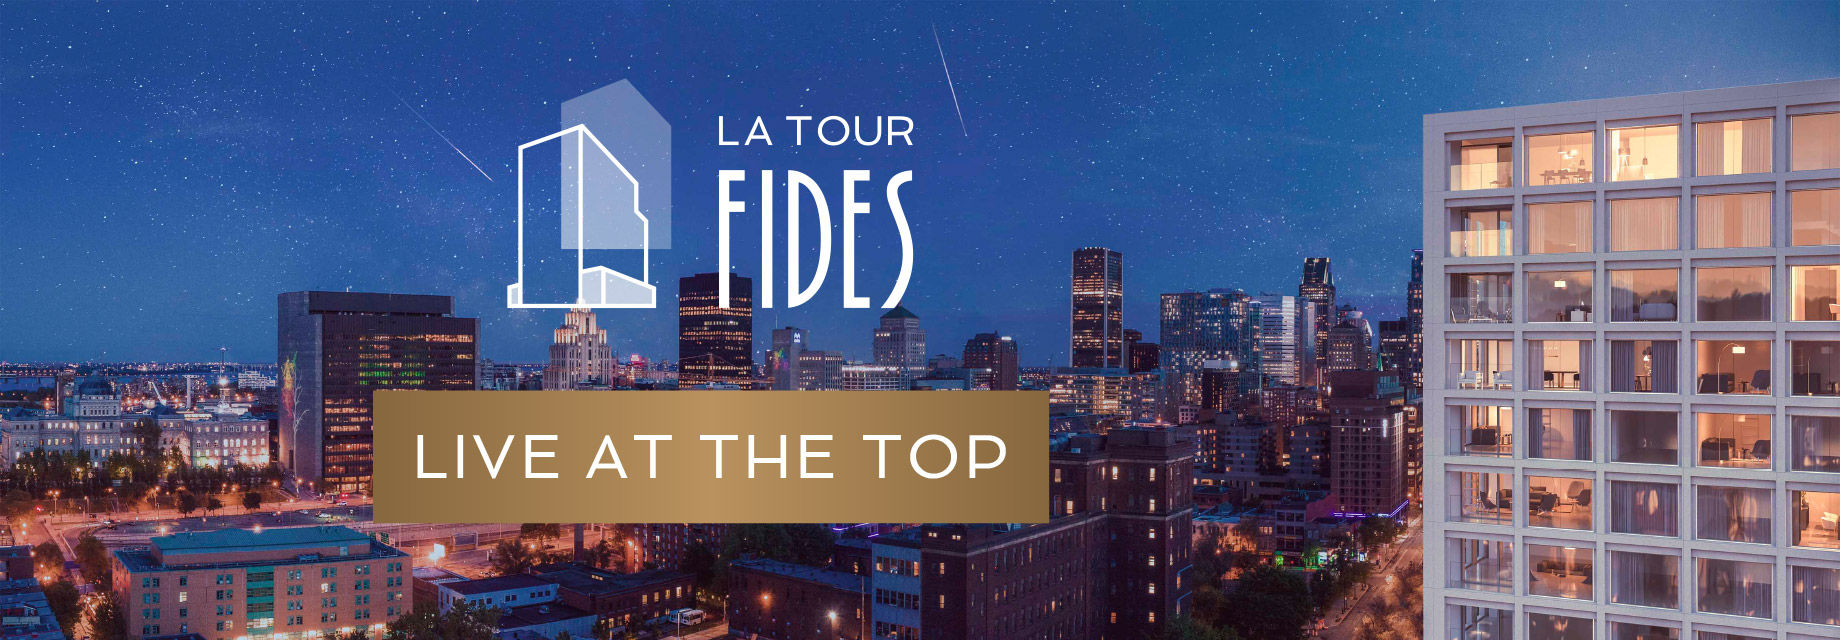 La Tour Fides, live at the top